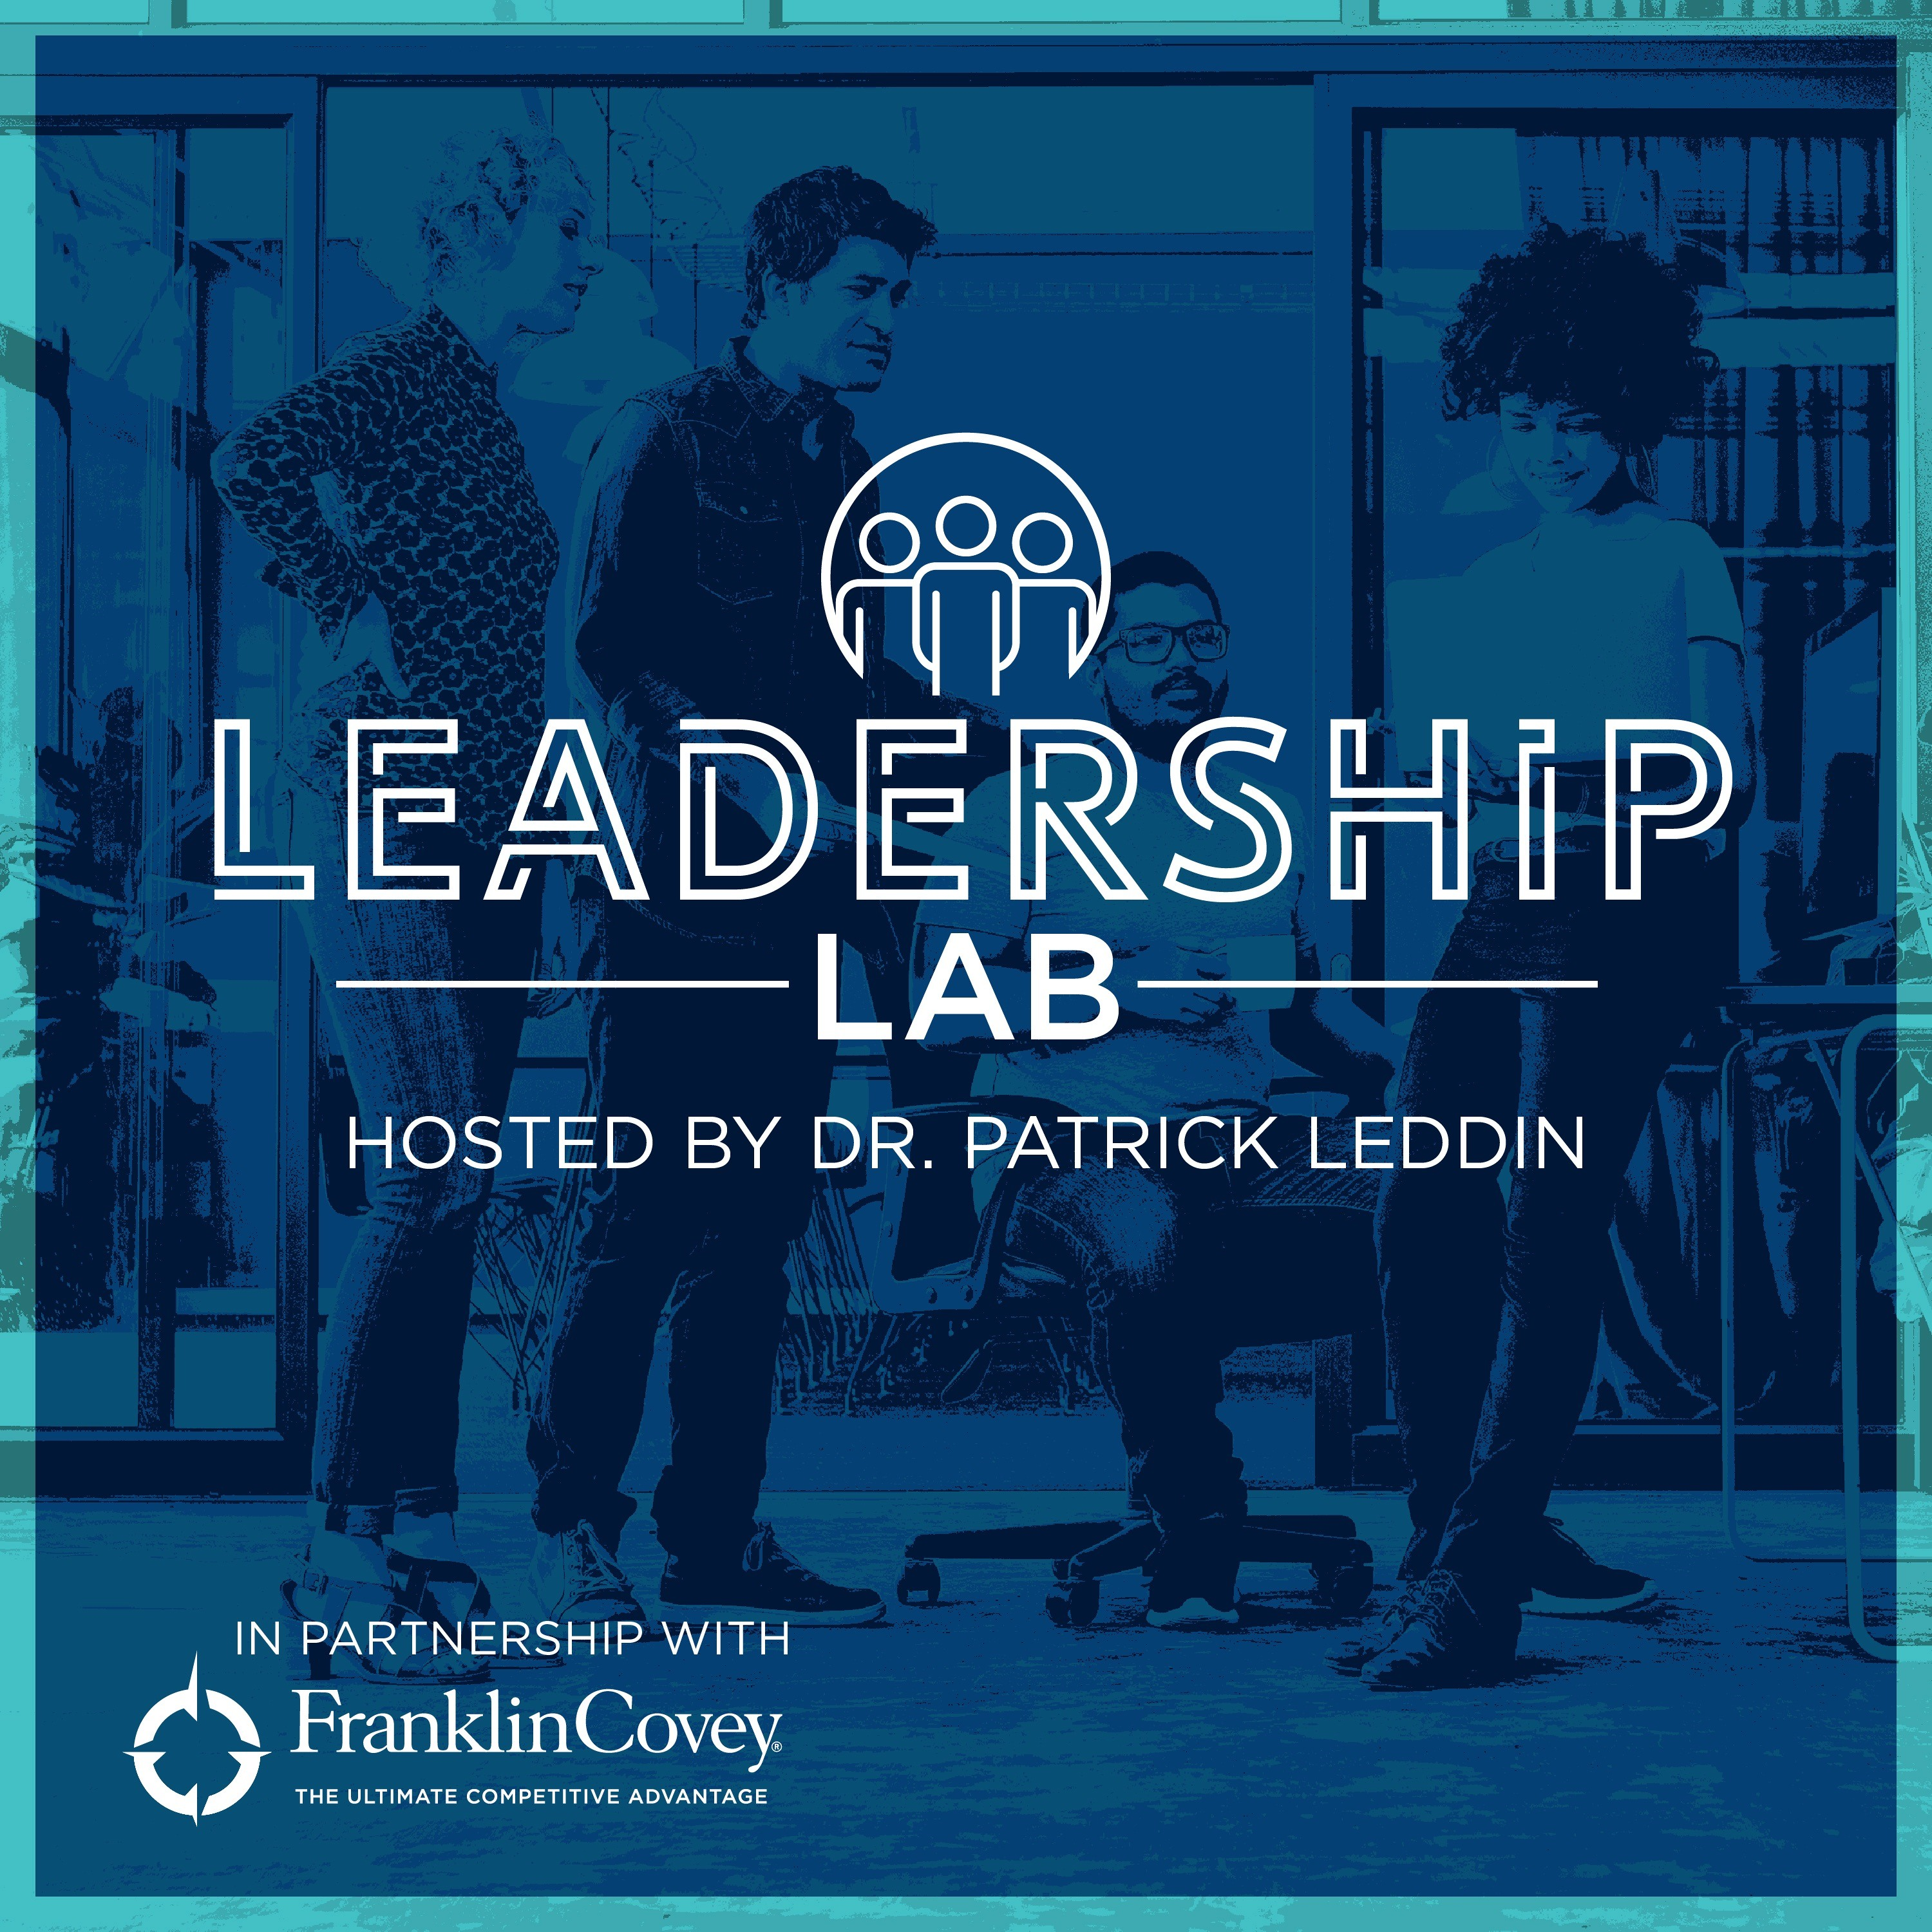 021 Build A Social Media Following With Elliot Choy And Kekoa Macauley Leadership Lab With Dr Patrick Leddin Podcast Podtail Point2 gives you far more than a schools in elliot lake include elliot lake secondary school, central avenue public school, our. podtail